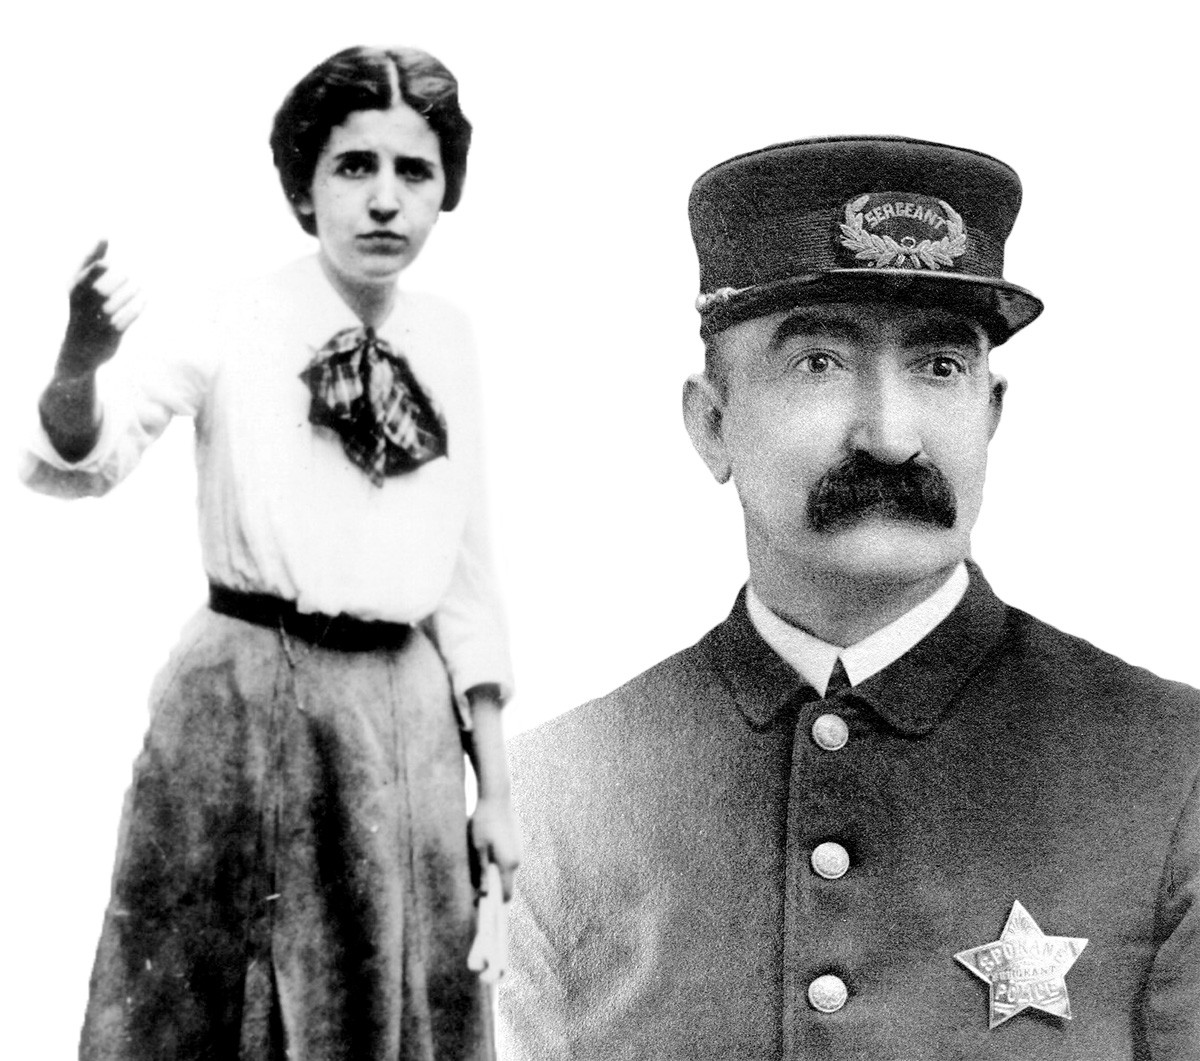 Activist Elizabeth Gurley Flynn and murdered cop John Sullivan are real people and characters in Walter's latest fiction.